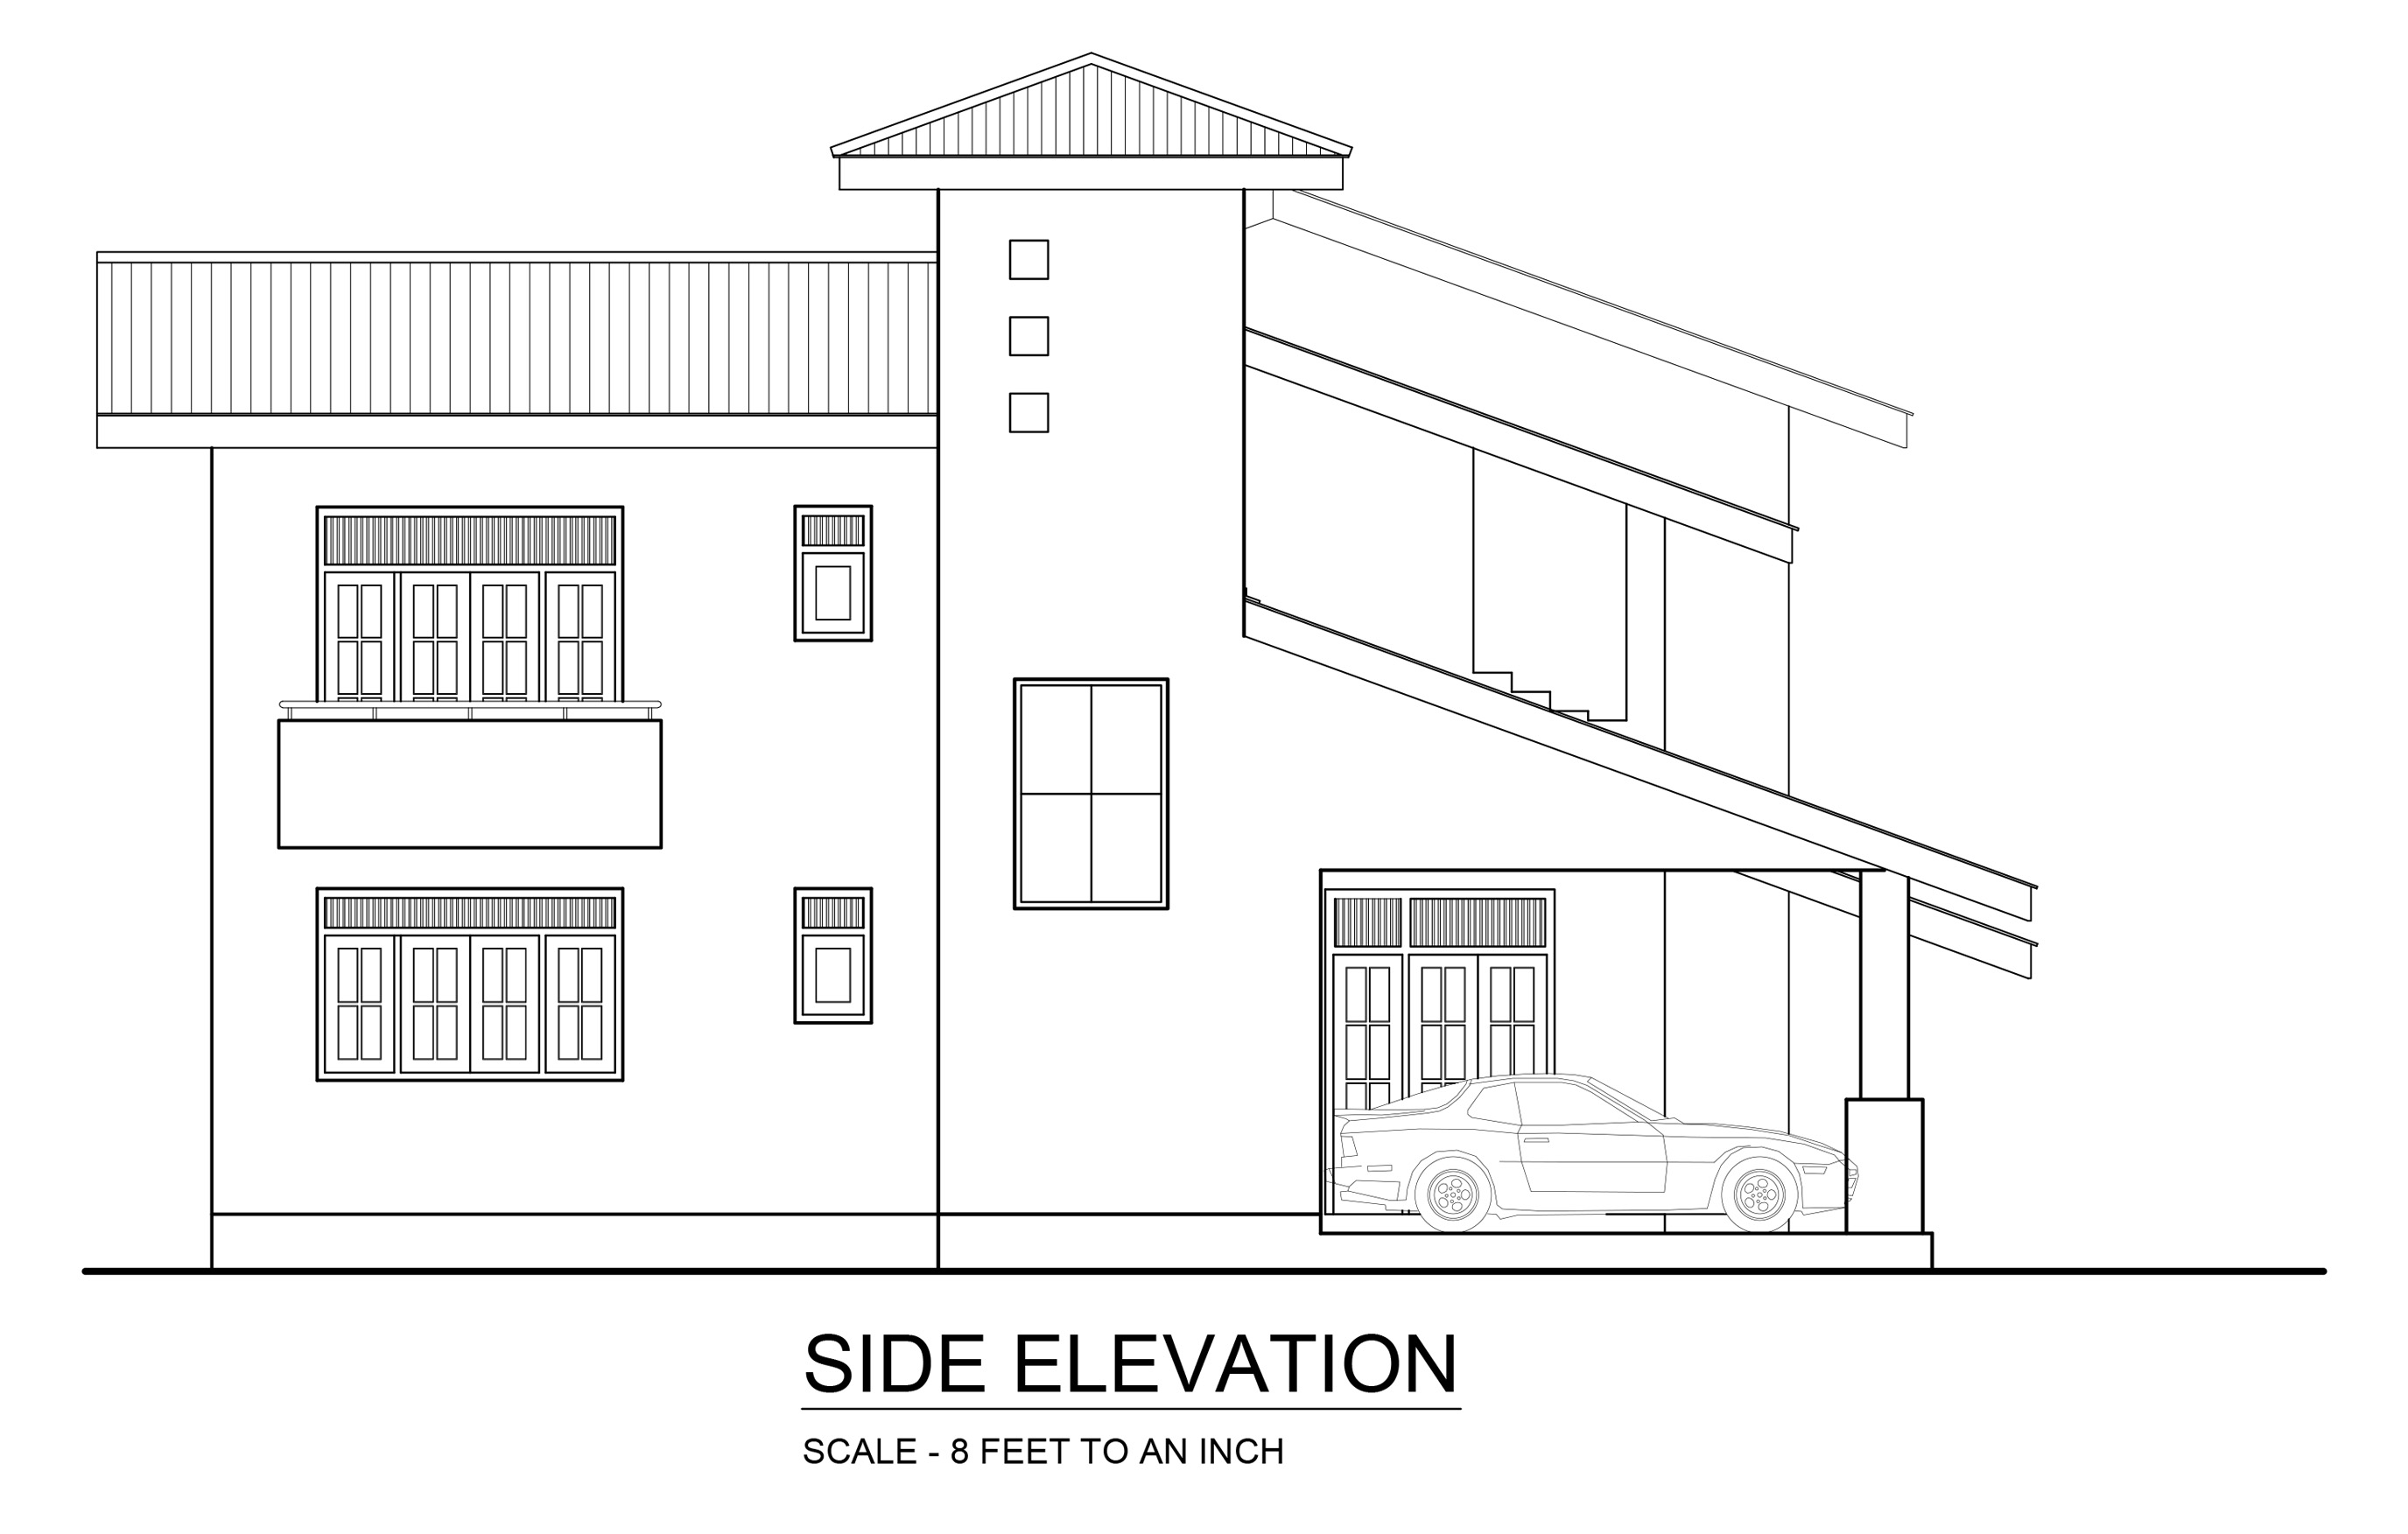 Elevation Plan Requirements : Premium quality four bedroom double story house plan